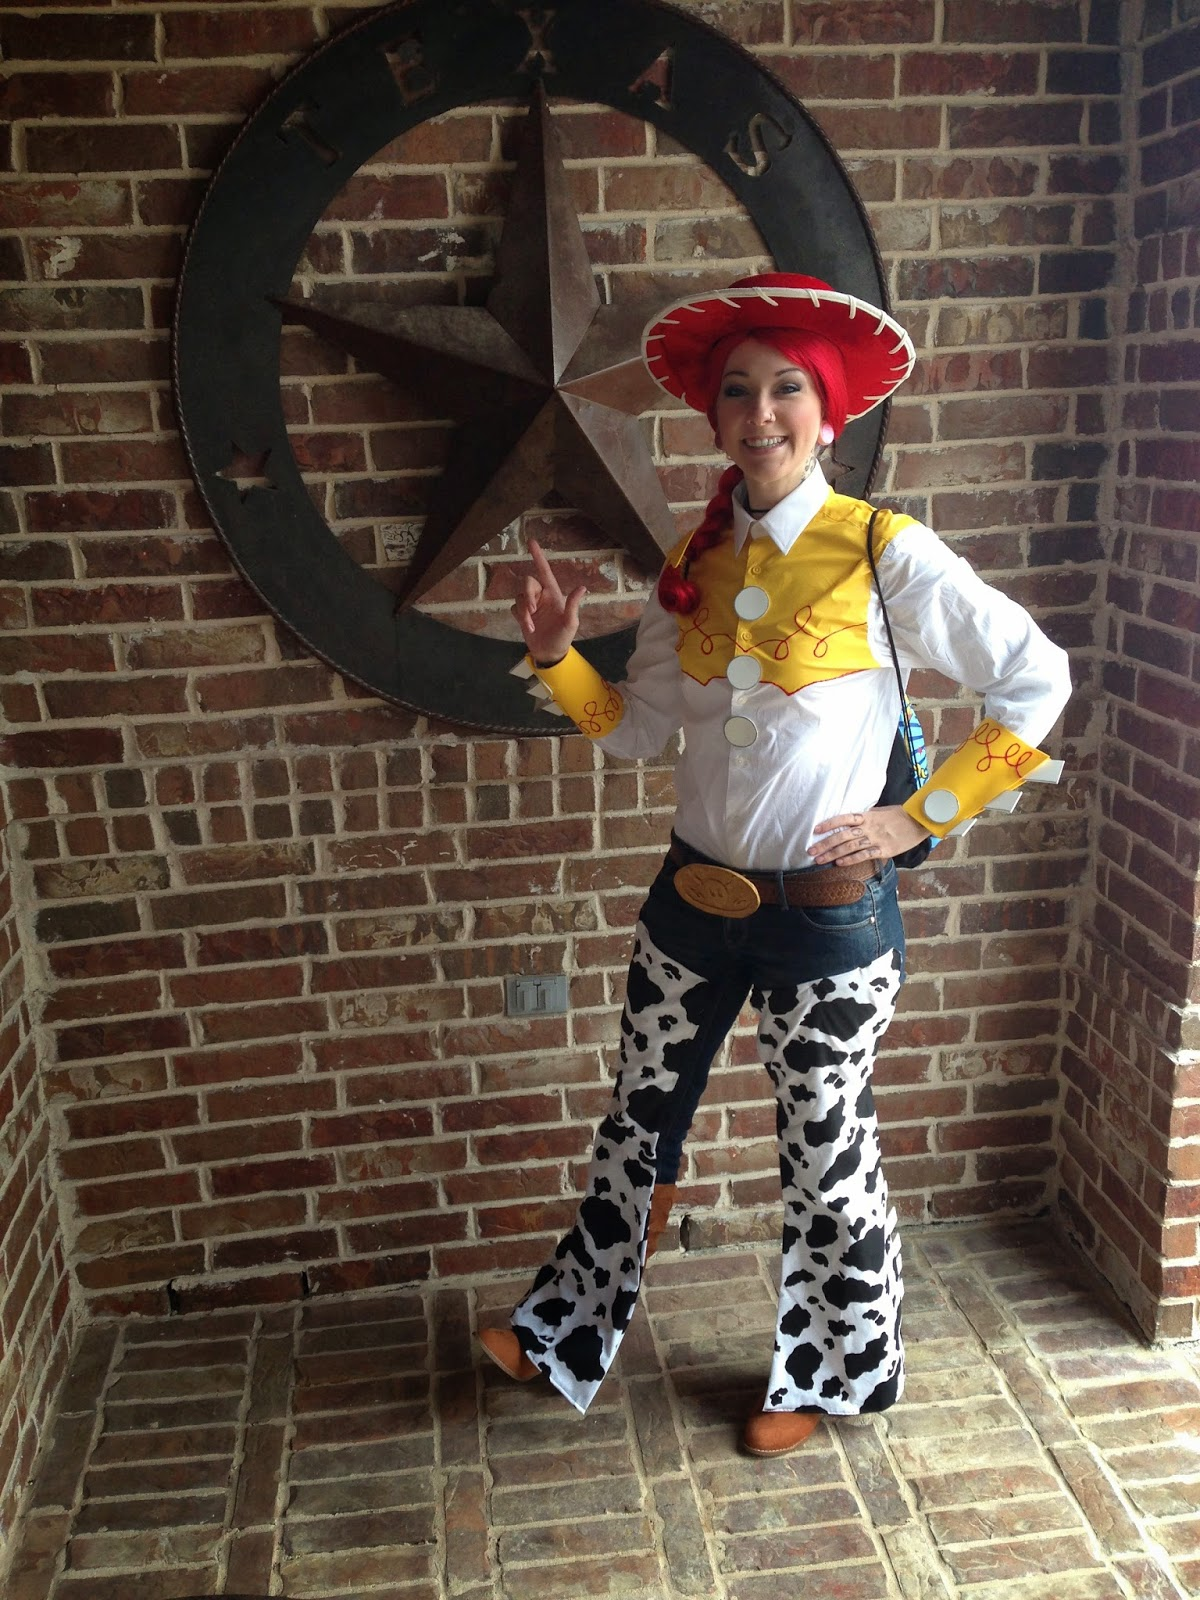 Omglitzy tutorial jessie from toy story cosplay its a used official toy story licensed hat sadly i cant find any others online to link for you but this tutorial gives good tips solutioingenieria Images